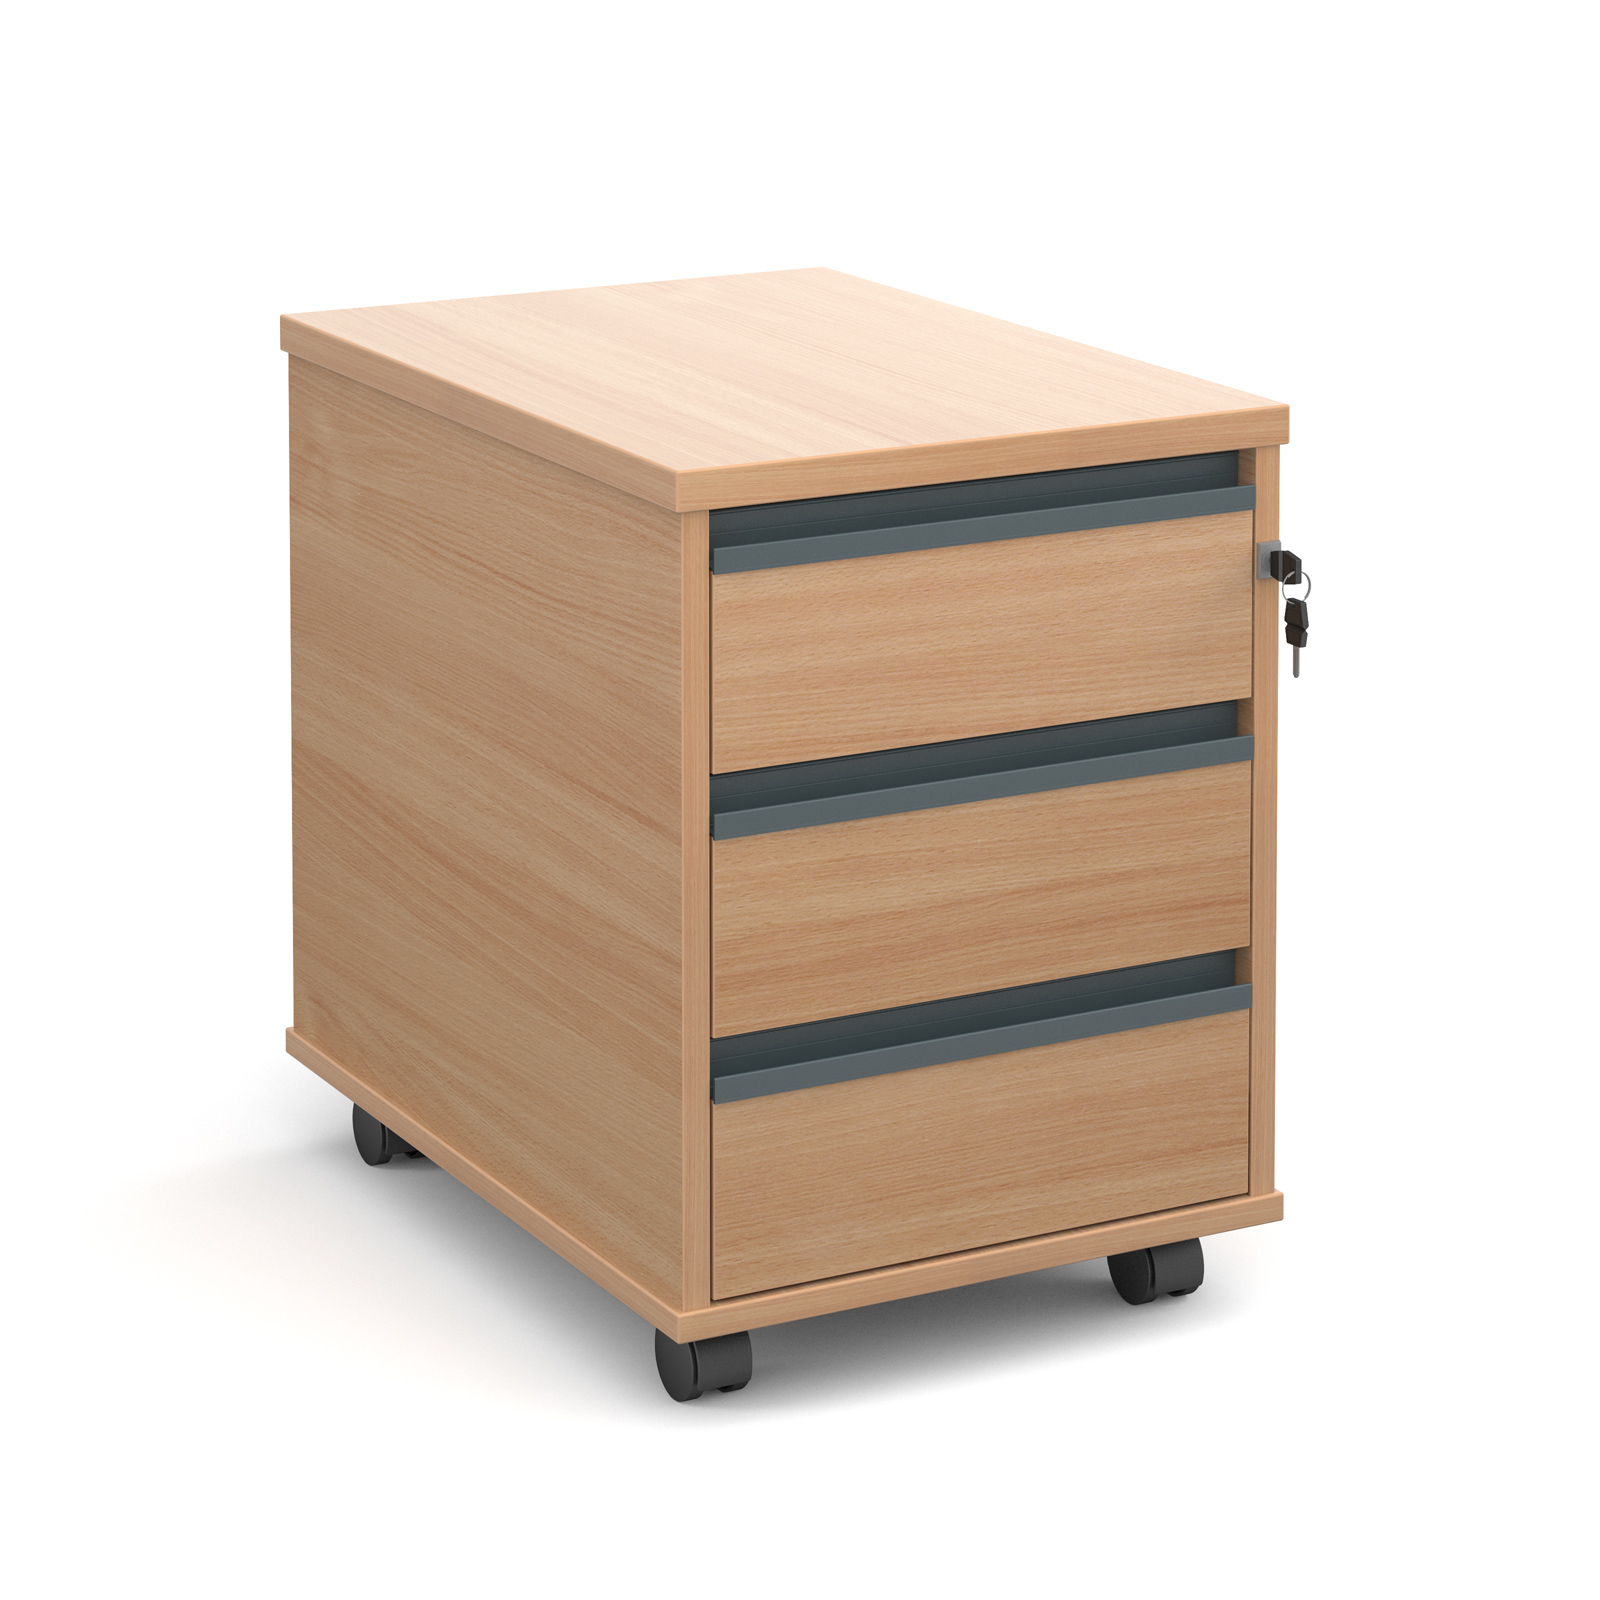 Mobile 3 drawer pedestal with graphite finger pull handles 600mm deep - beech